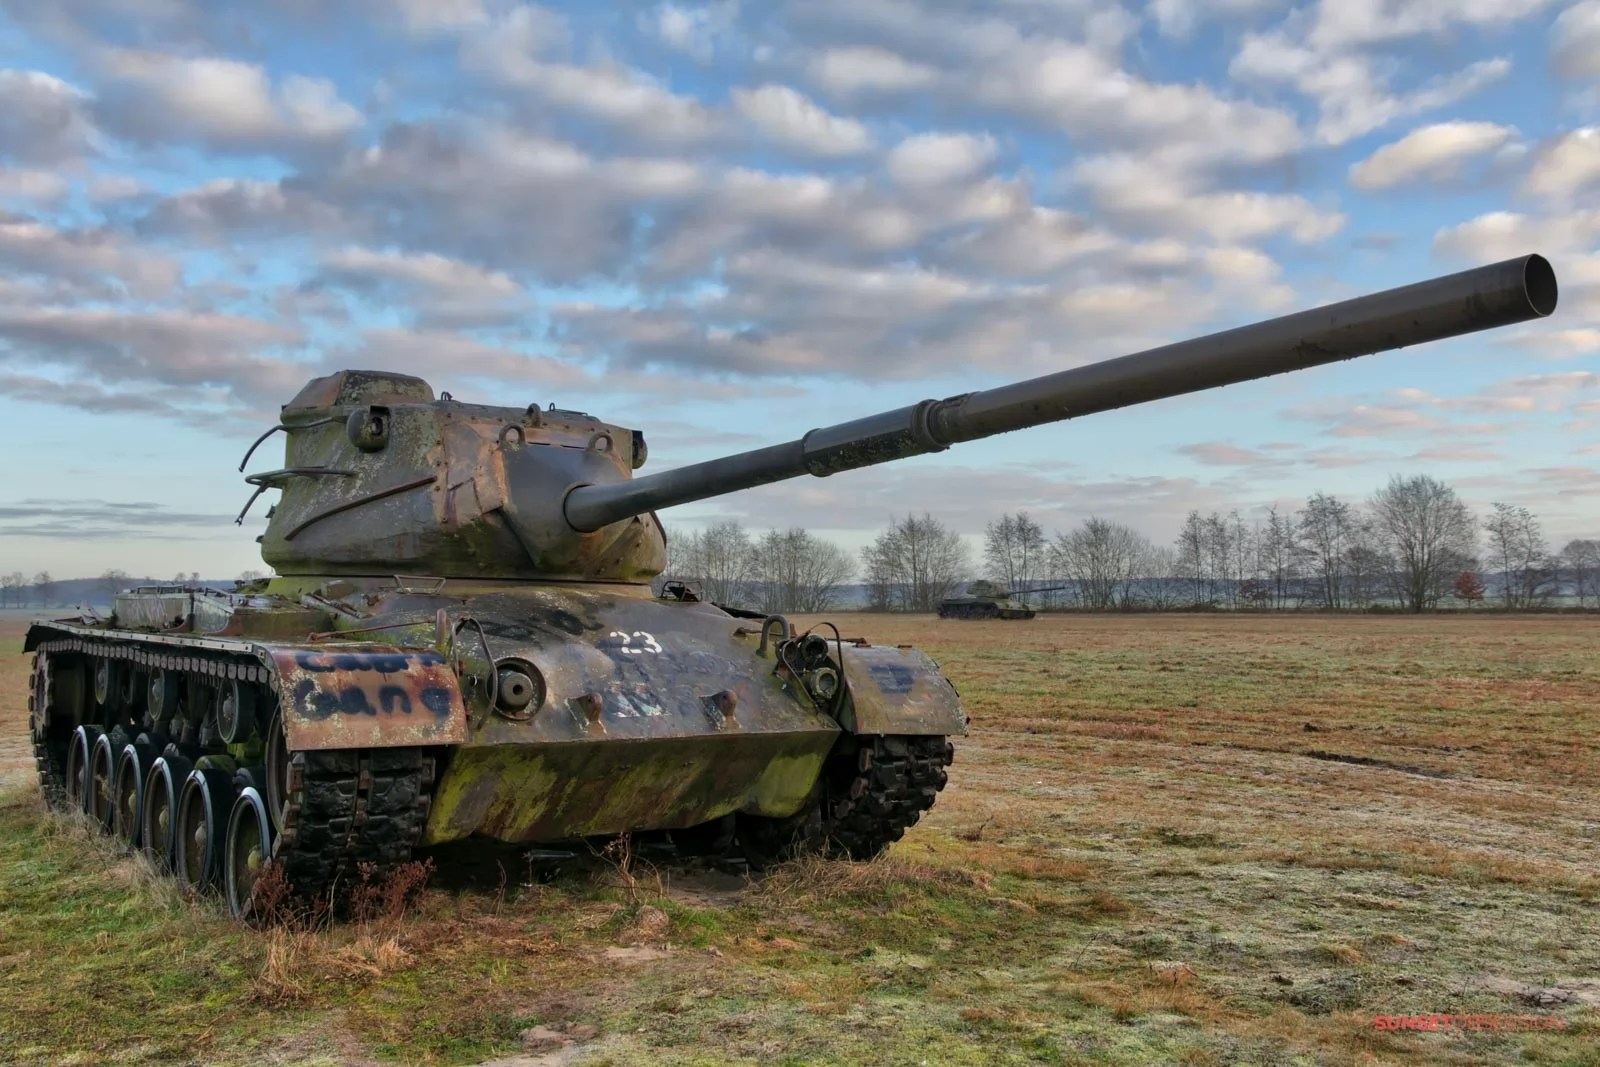 The abandoned M47 Patton